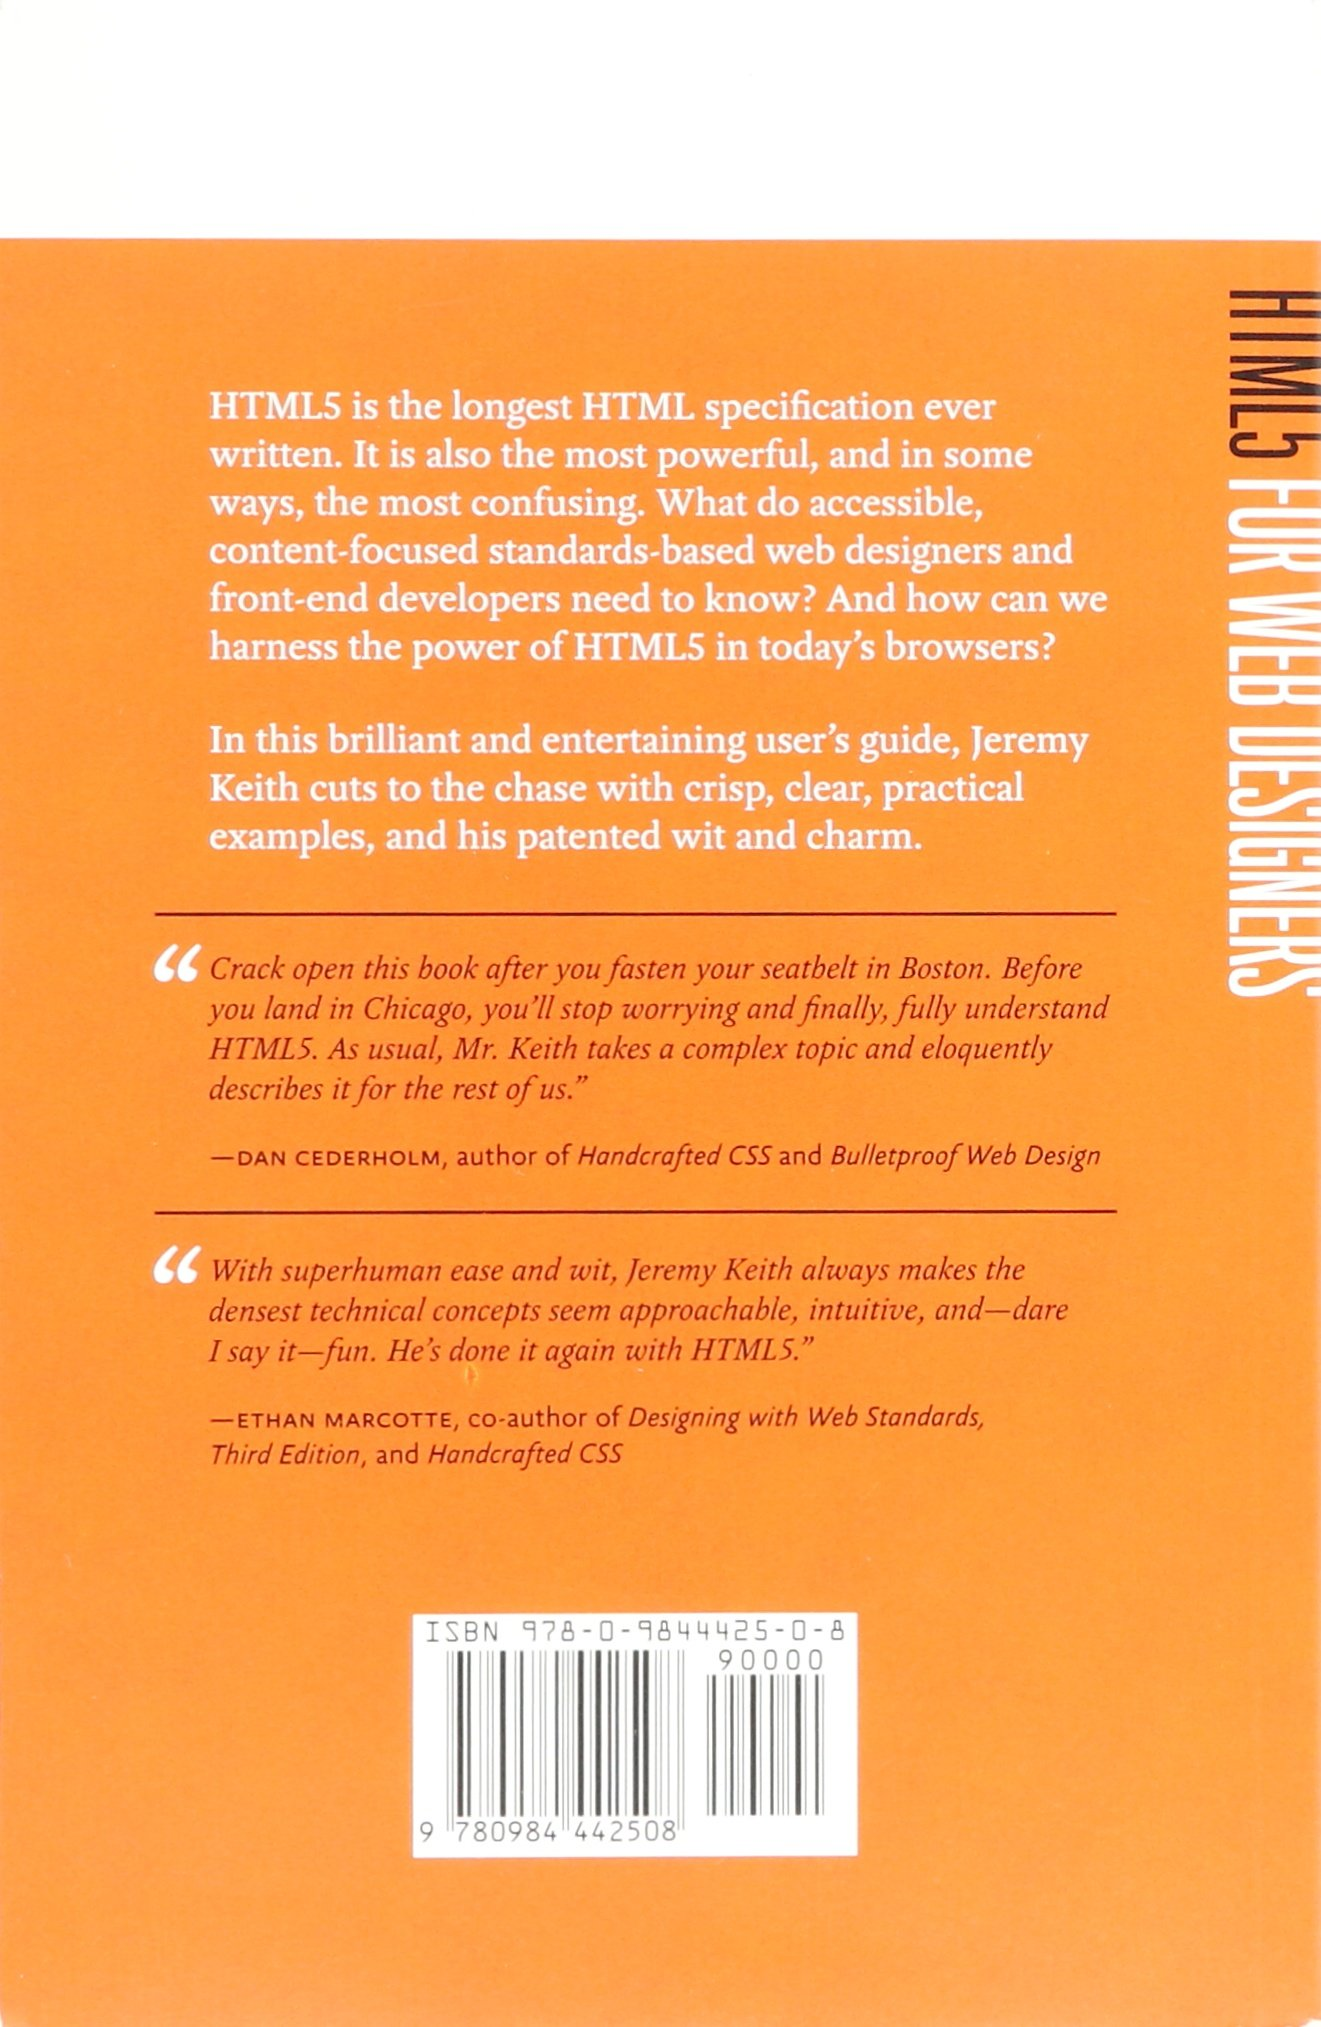 Html5 for web designers jeremy keith 9780984442508 amazon com books